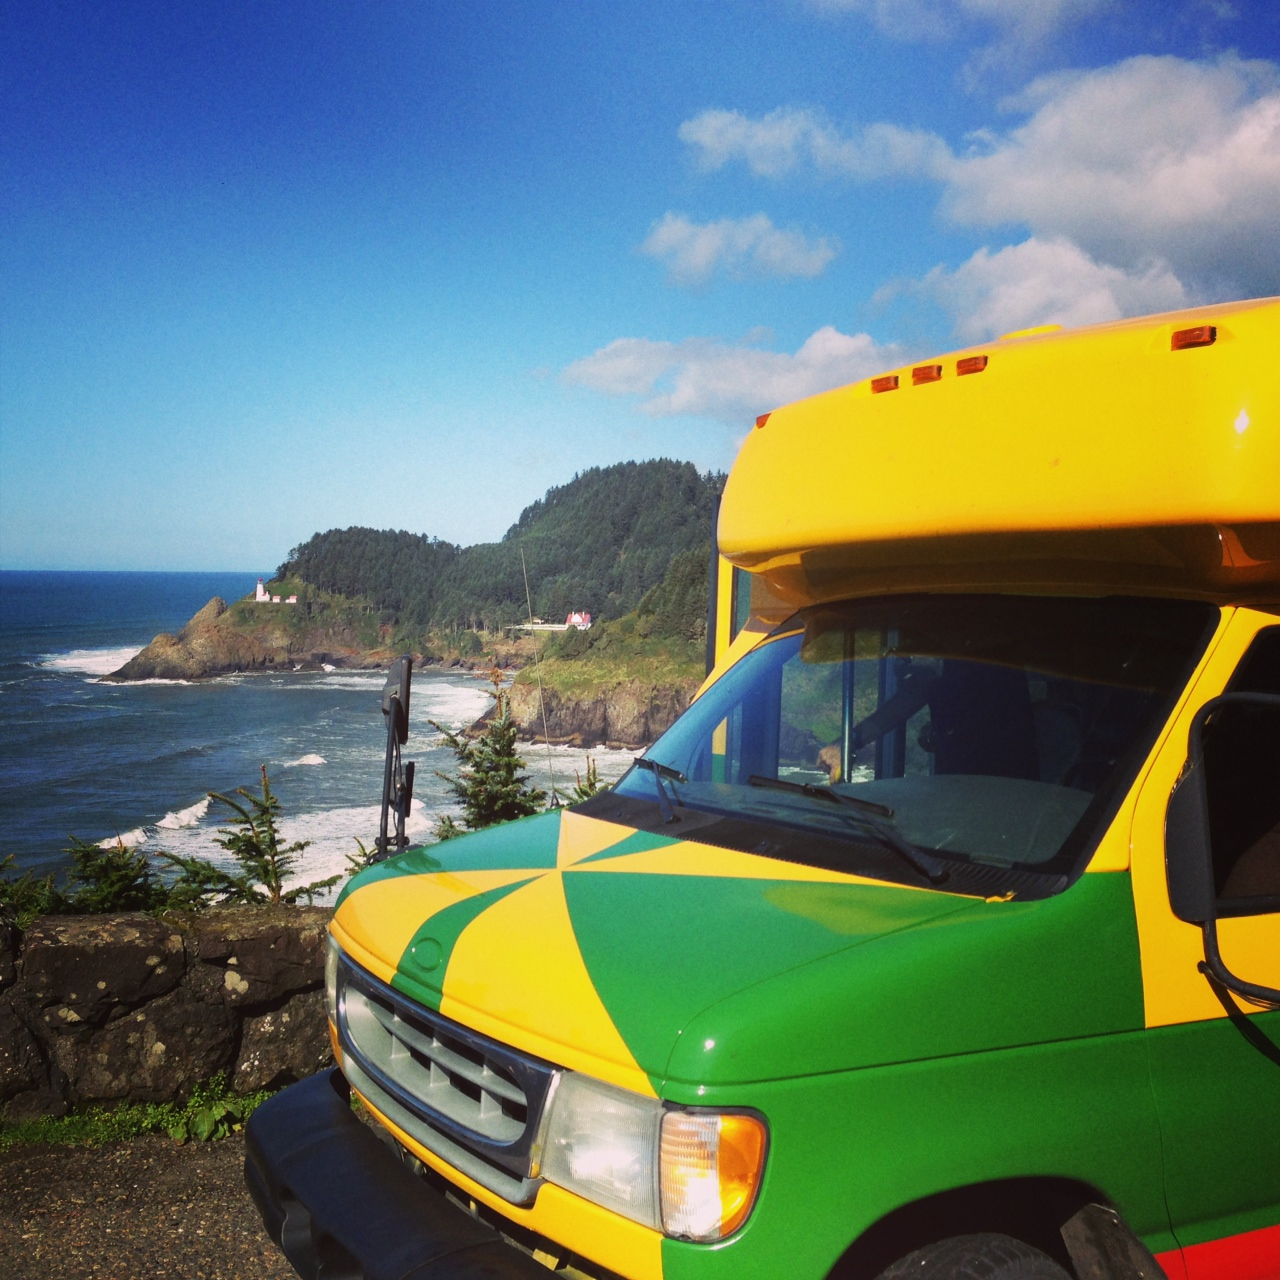 Pegasus shuttle bus at Heceta Head lighthouse on the Oregon Coast